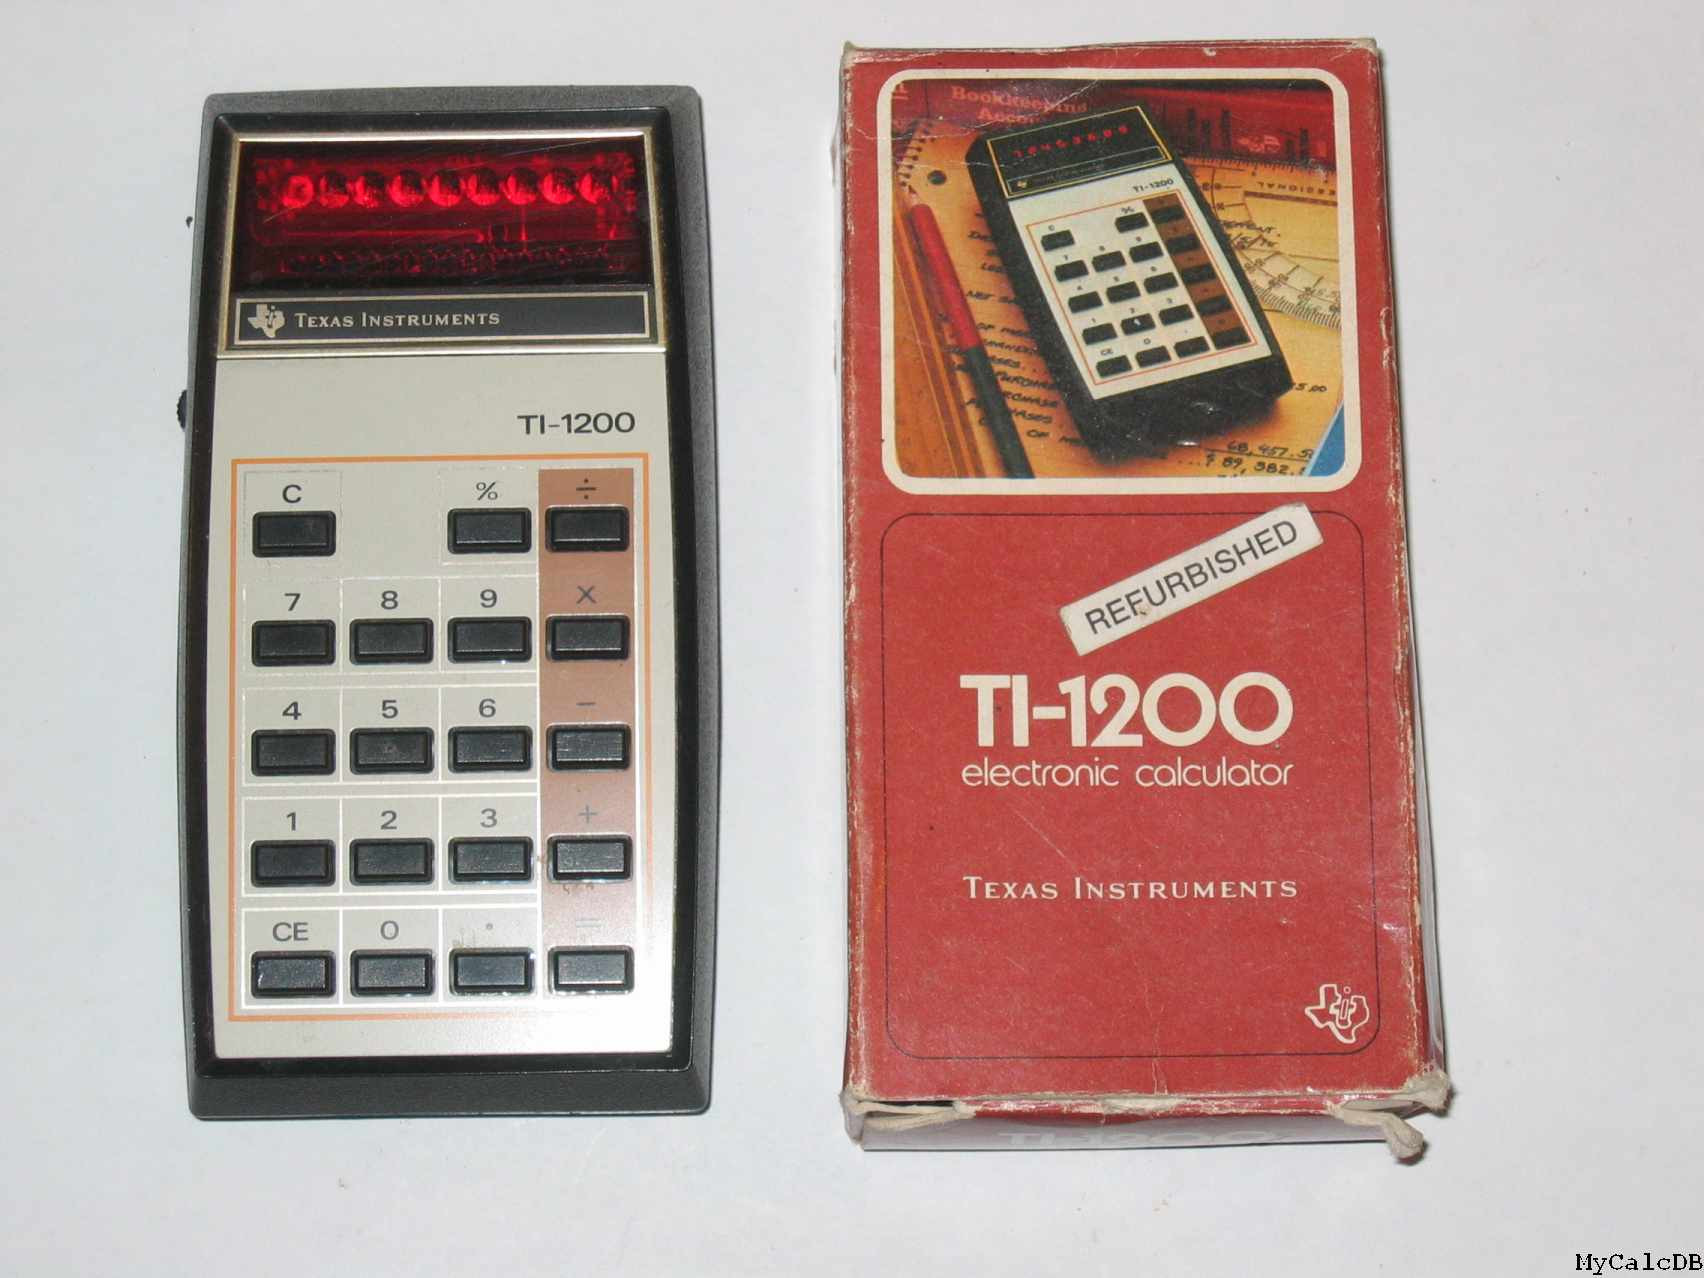 Texas Instruments TI-1200